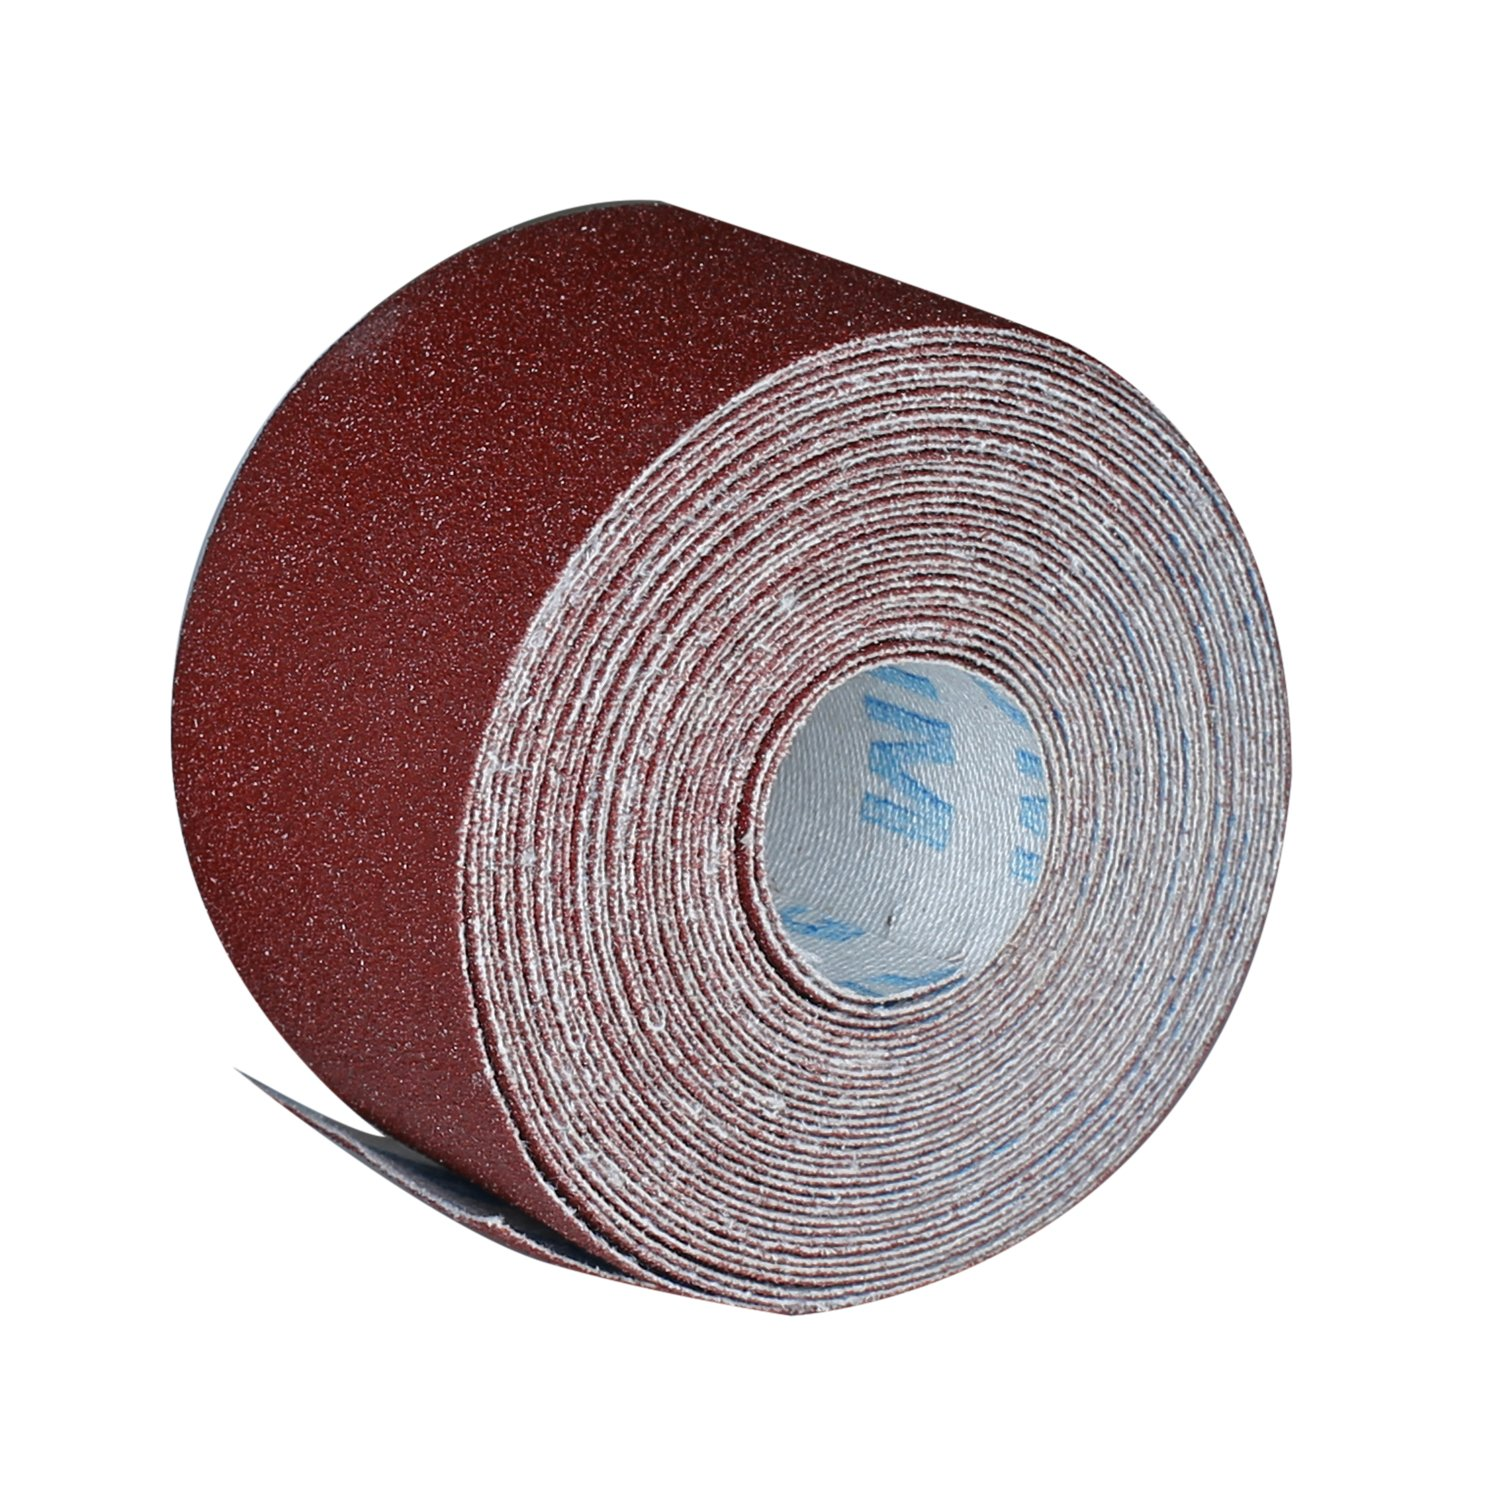 120 Grit CMP Plumbing Products ASC120Y5 Sand Cloth for Cleaning Copper Pipe and Fittings 1 3//8 1 3//8 5 yd